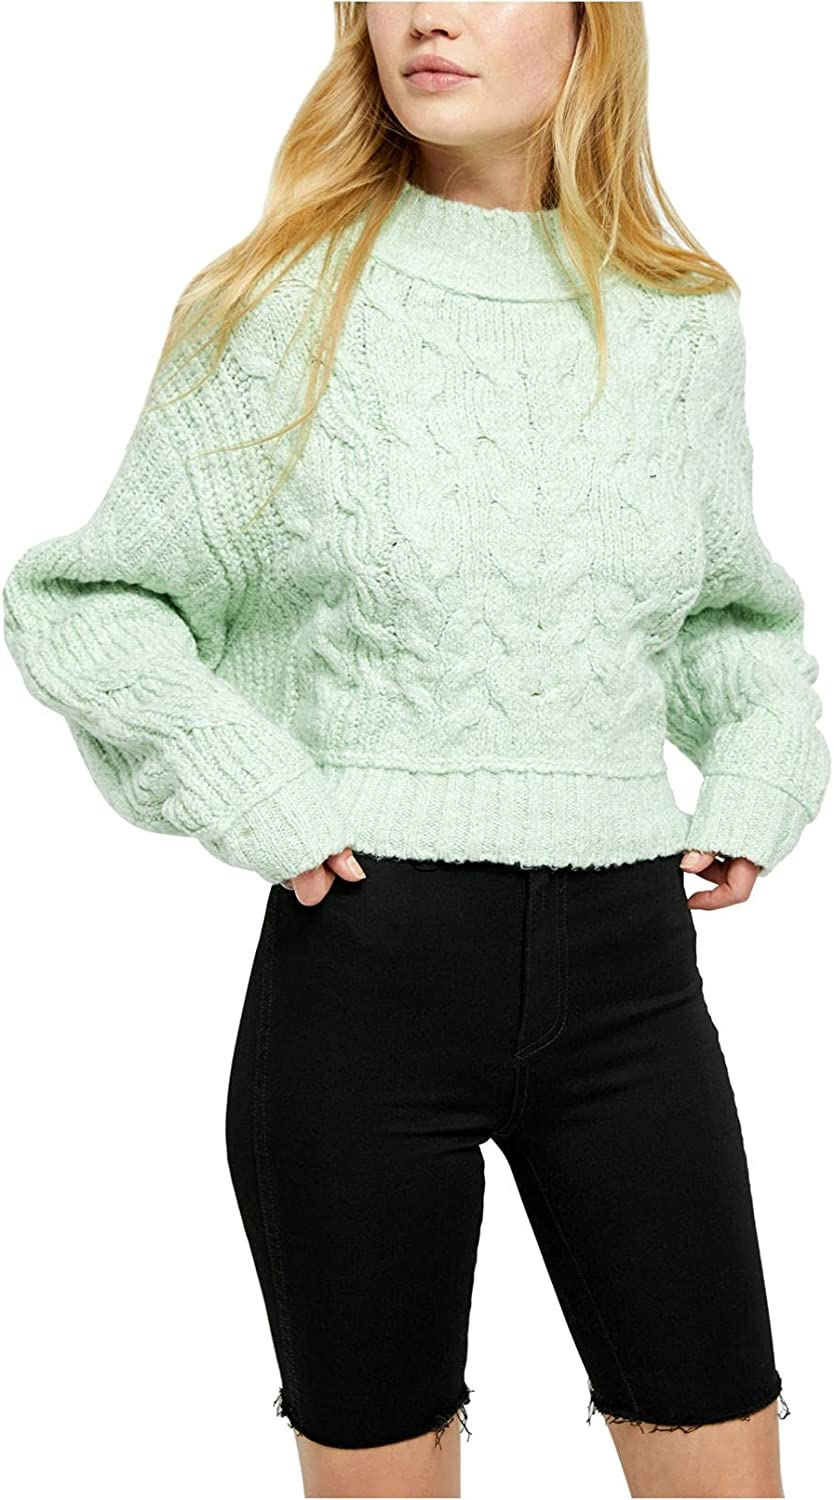 Free People Womens Merry Go Round Cable Knit Cropped Pullover Sweater Green M